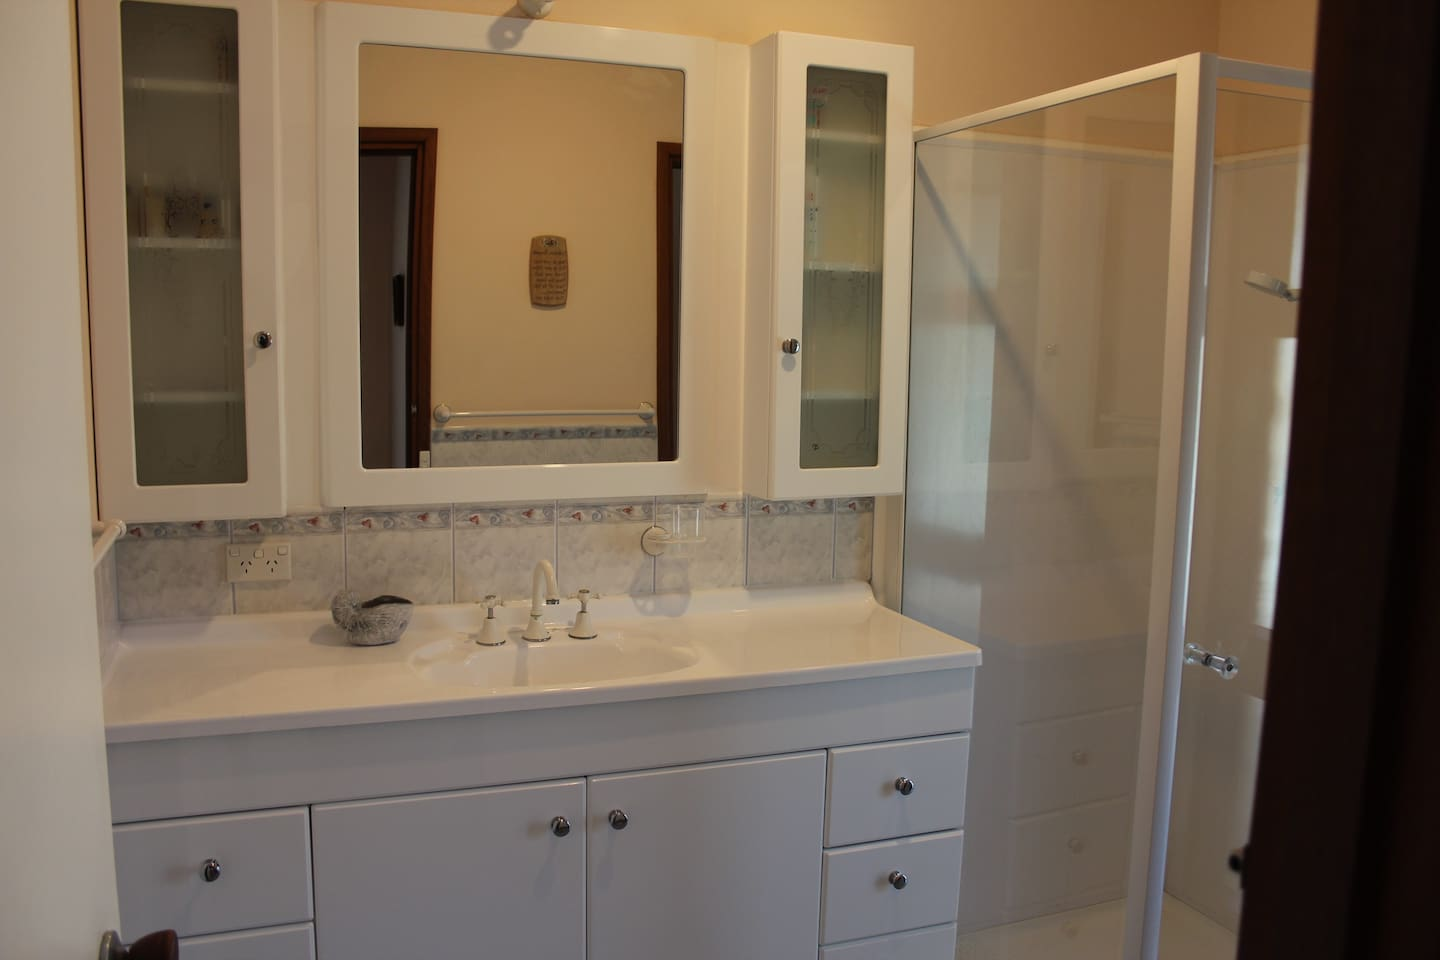 clean and spacious bathroom with power points for hairdryer